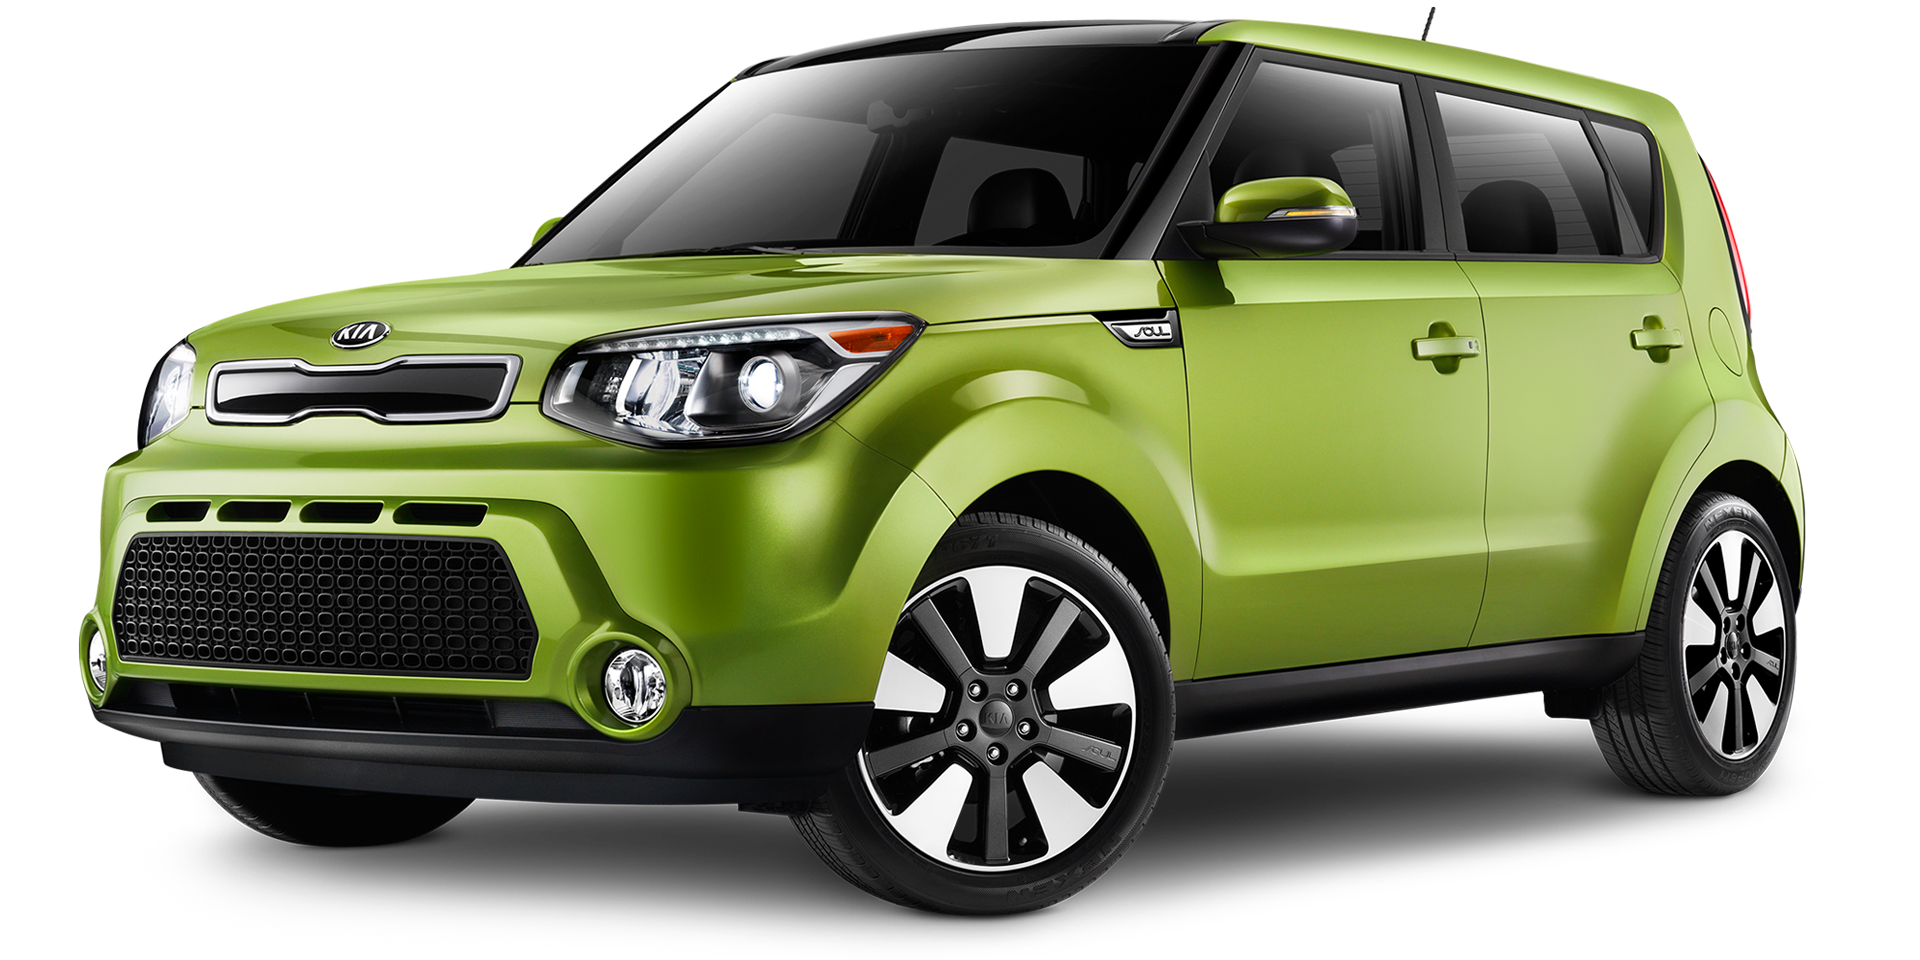 The 2015 Kia Soul Alian Green with the lowest gas mileage